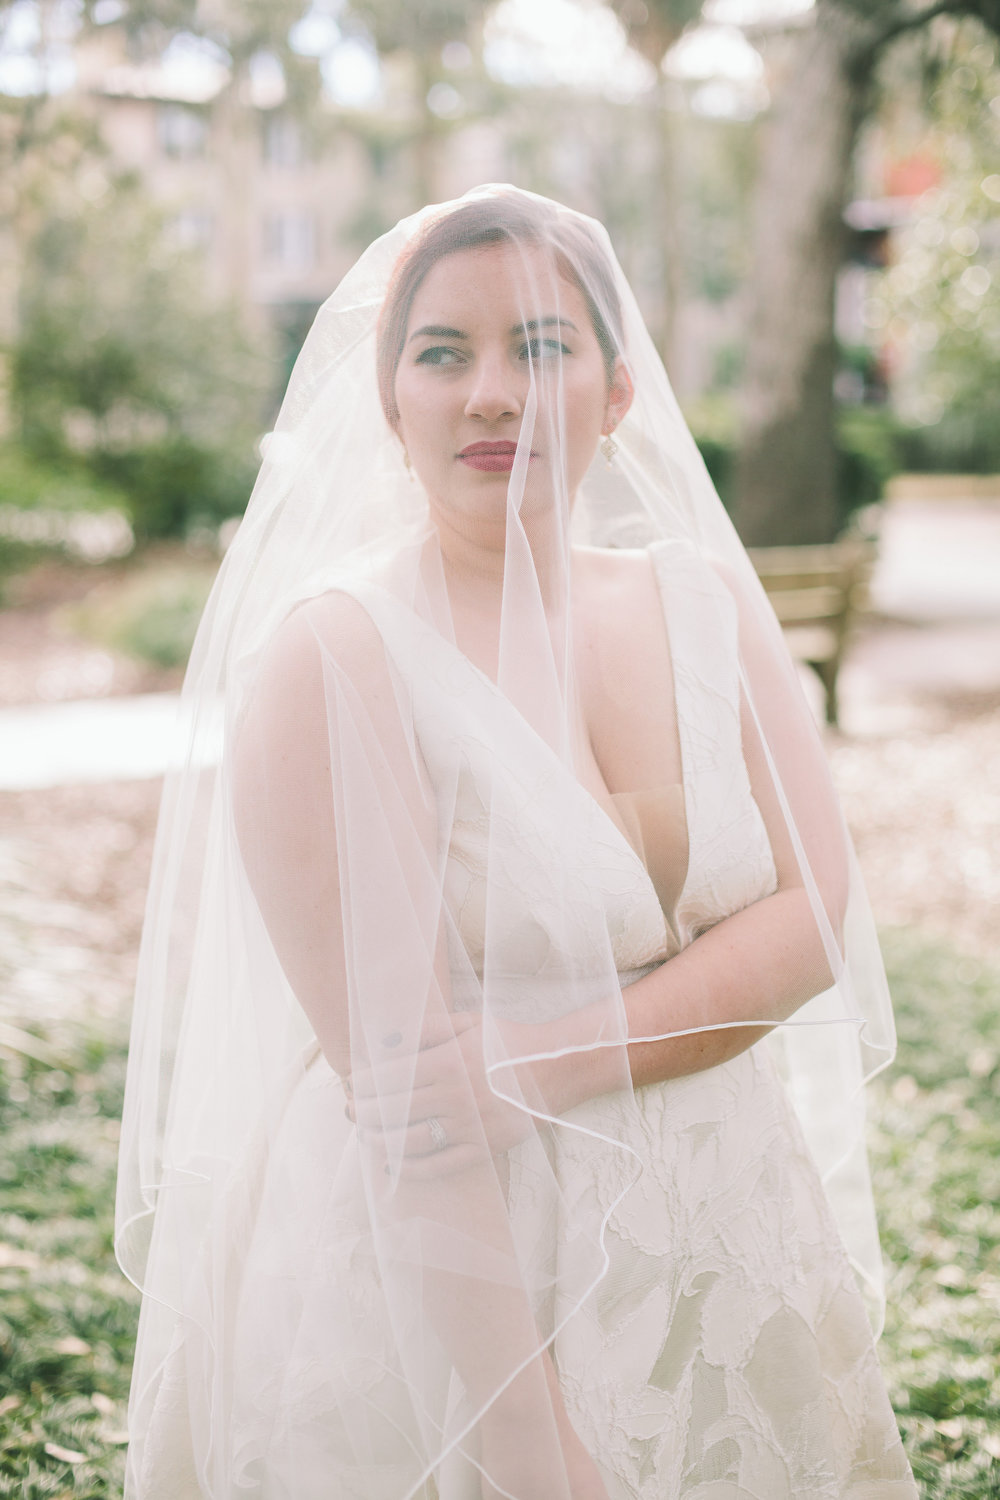 ivory-and-beau-bridal-boutique-jenna-davis-photography-kinsley-rebecca-schoneveld-savannah-bridal-boutique-savannah-bridal-shop-savannah-wedding-dresses-savannah-wedding-photographer-10.jpg